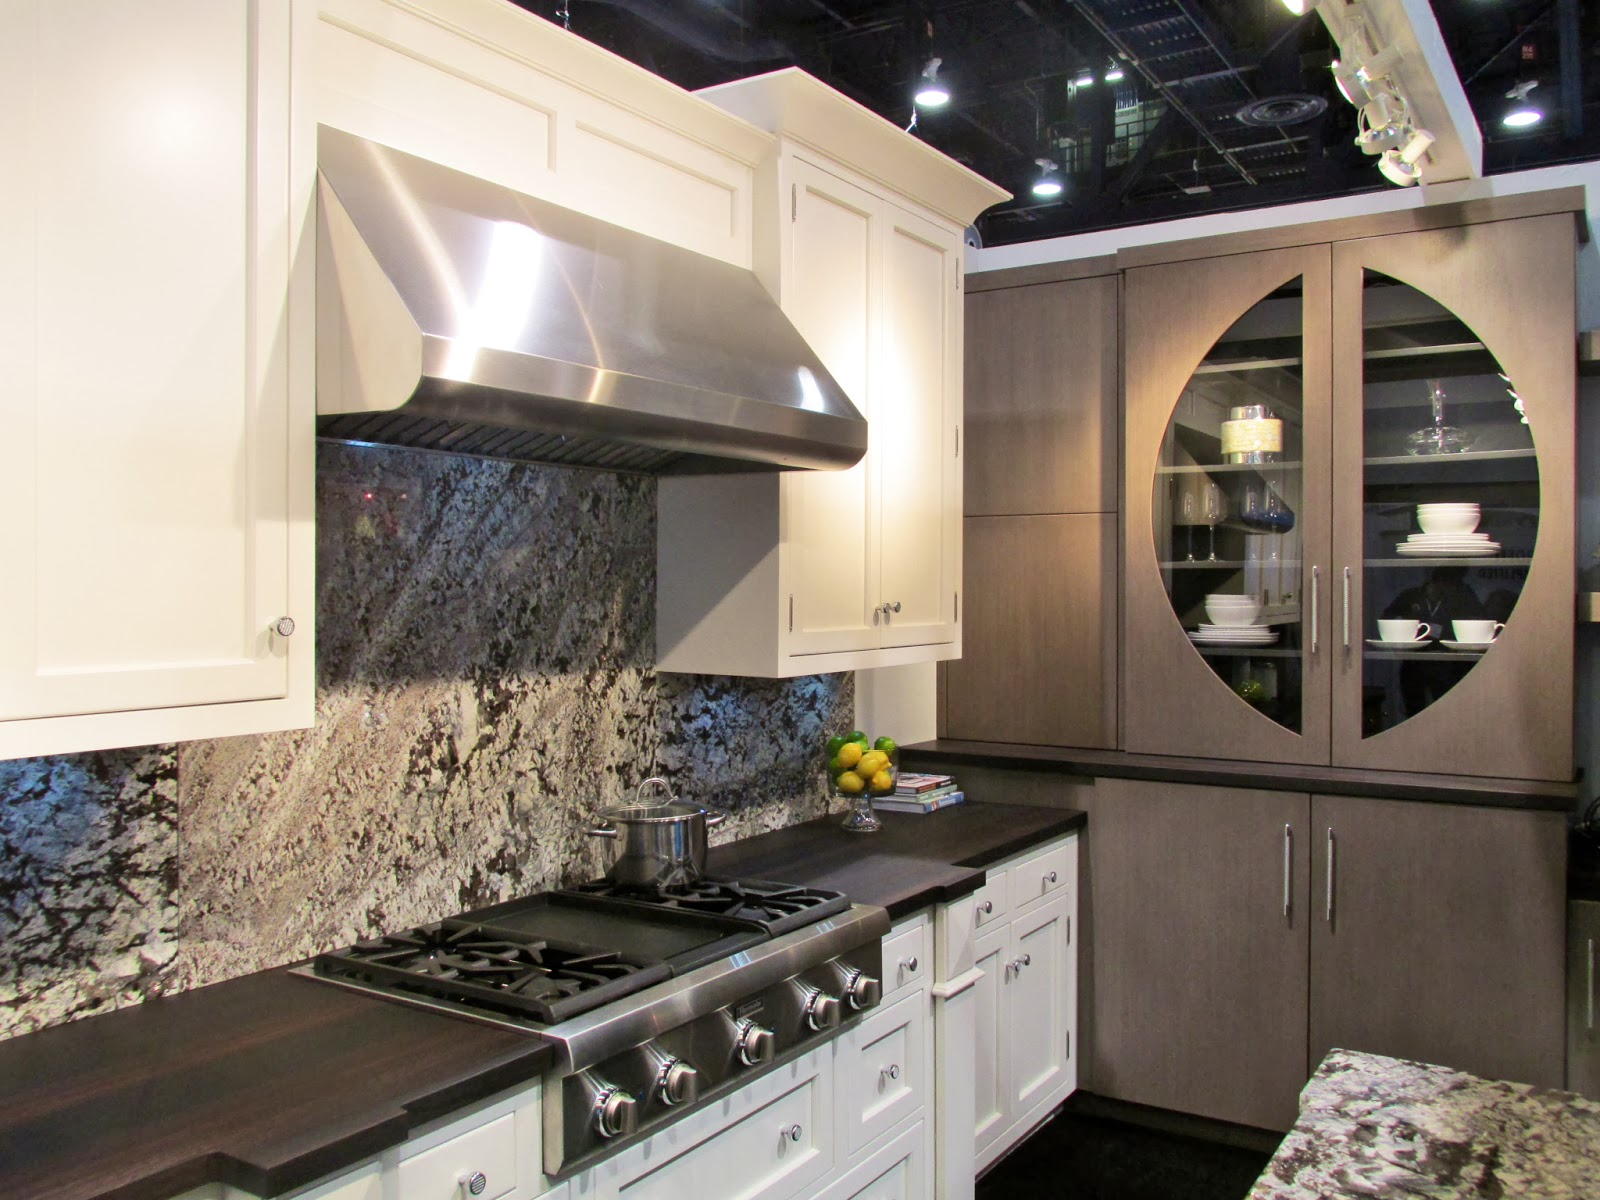 Mixing painted & stained cabinets has moved from trend to a classic look. We liked the dark wood countertops that tie these two pieces together. (Not to mention that striking glass door!)